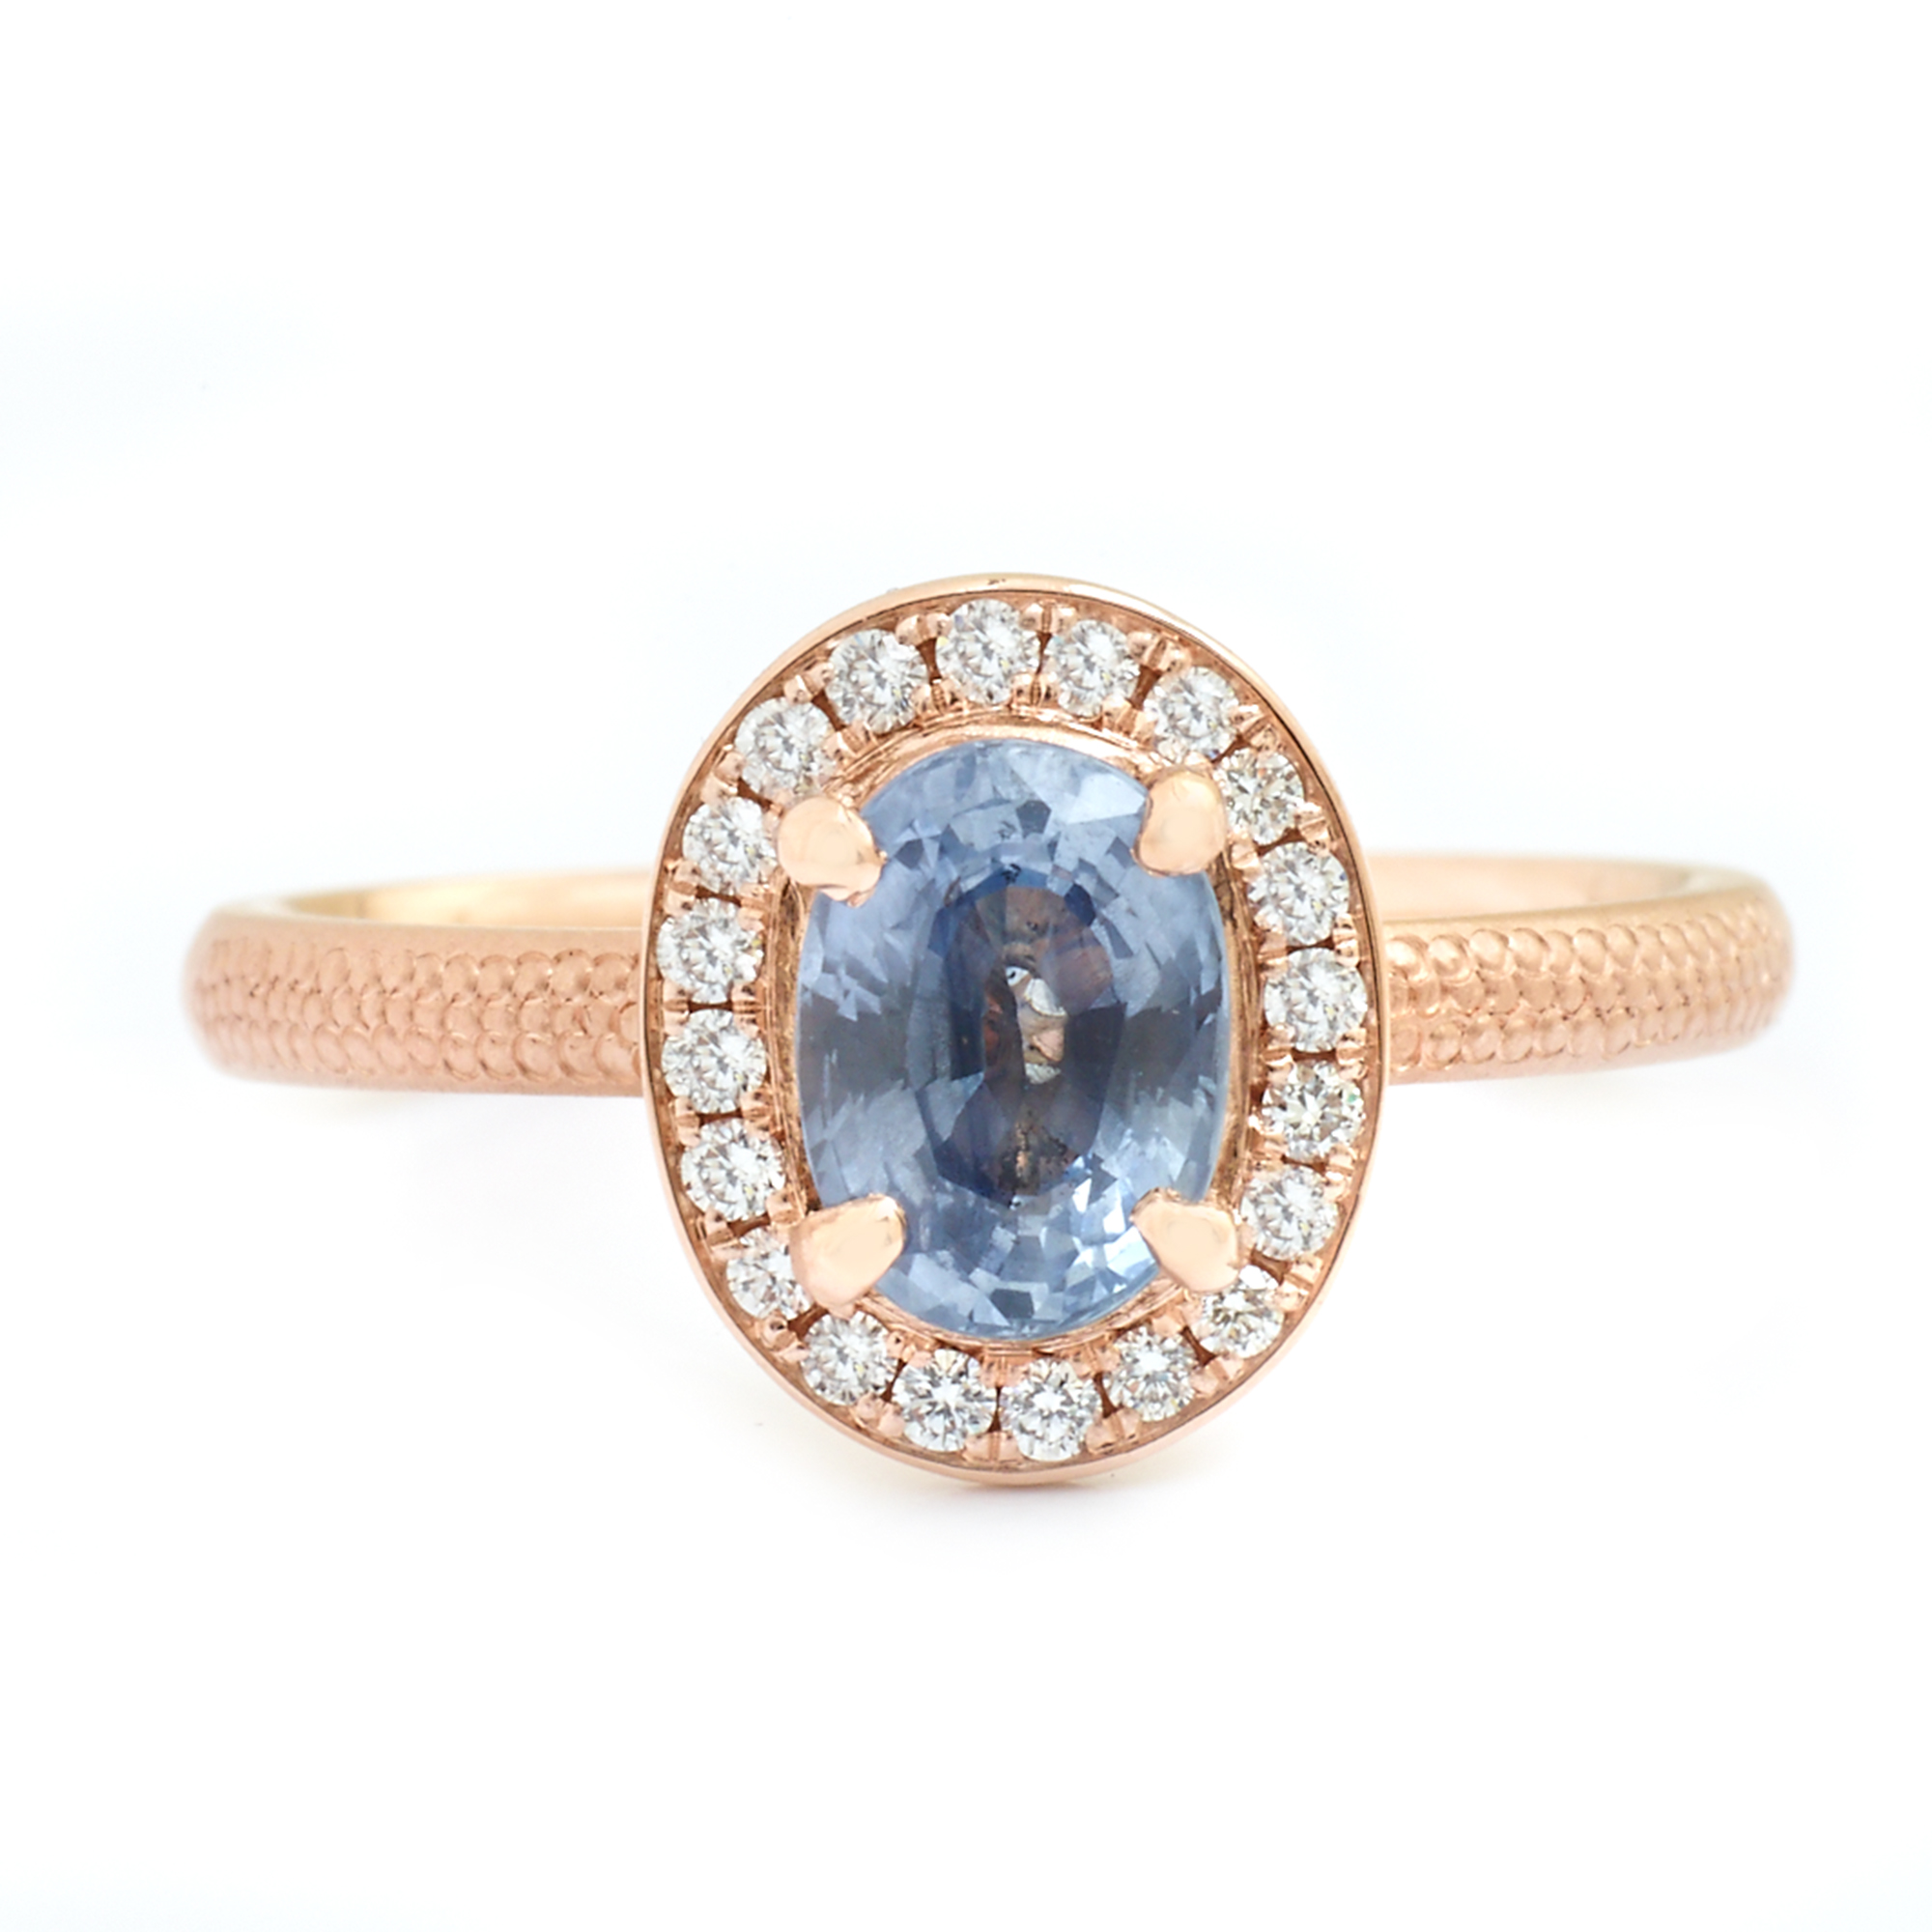 six jewelry rings cut pin aquamarine ring with diamonds rose khalsa ananda